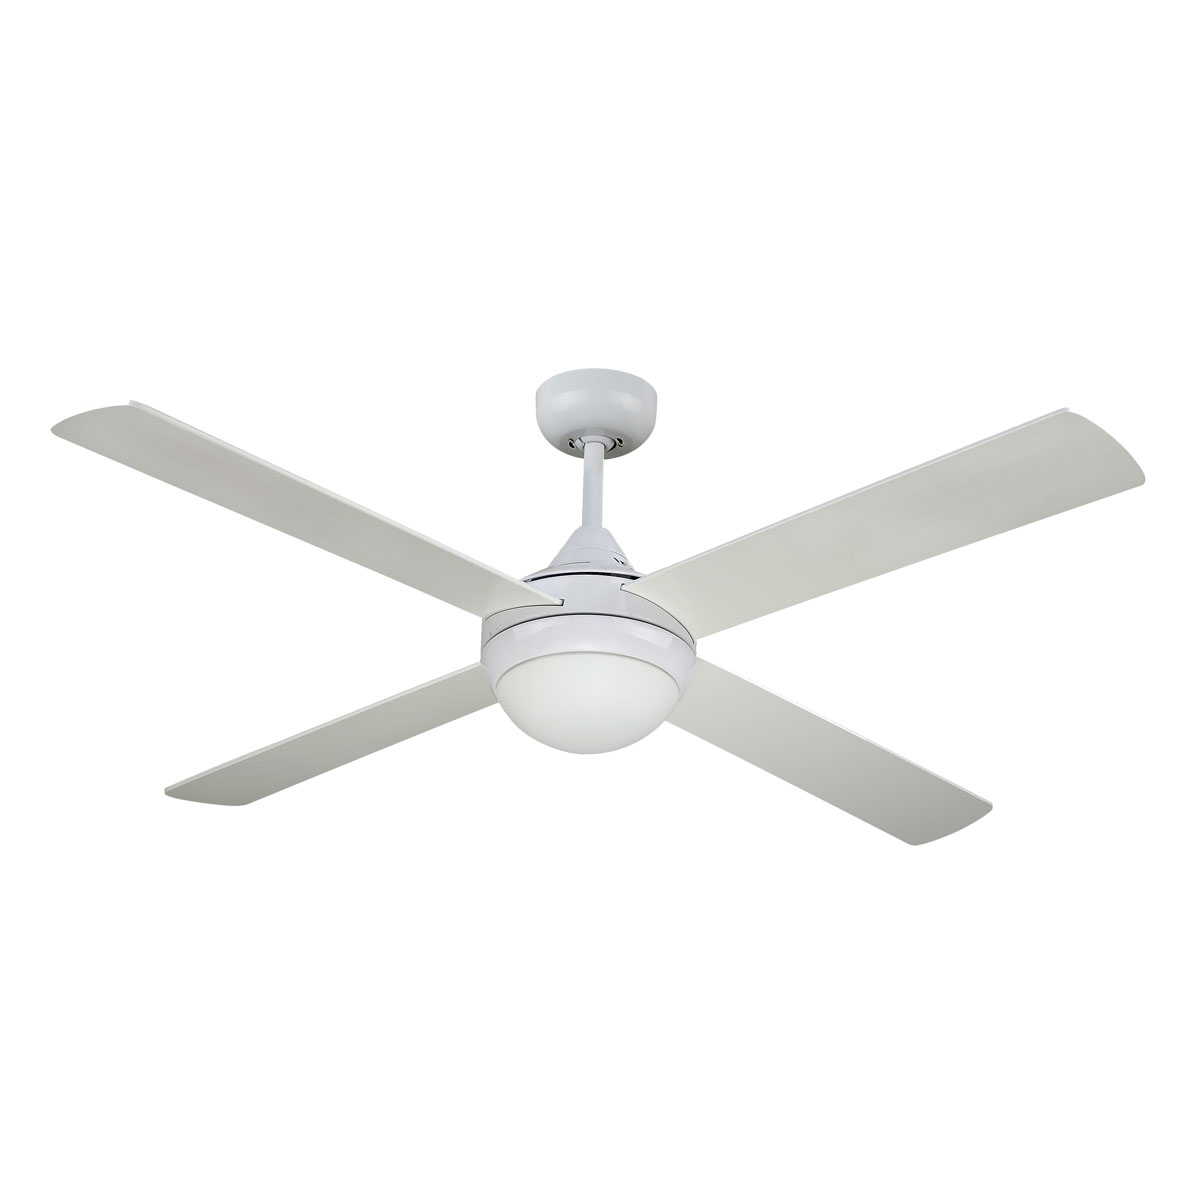 Revolve 48 Inch Ceiling Fan White with Light (2xE27